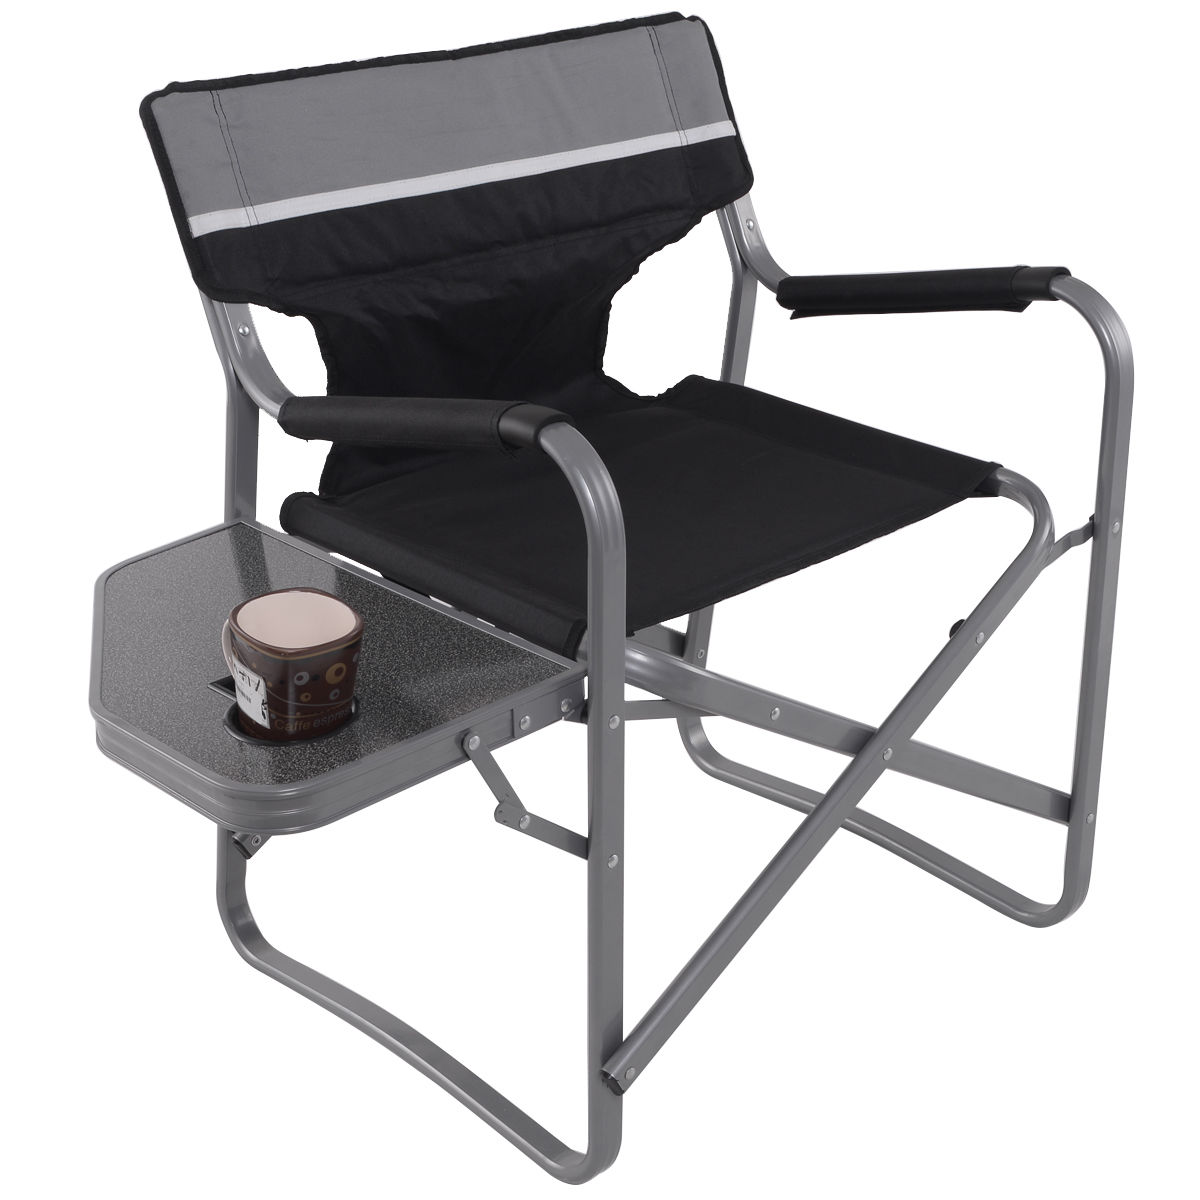 Folding Outdoor Camping Director's Chair with Cup Holder OP3208